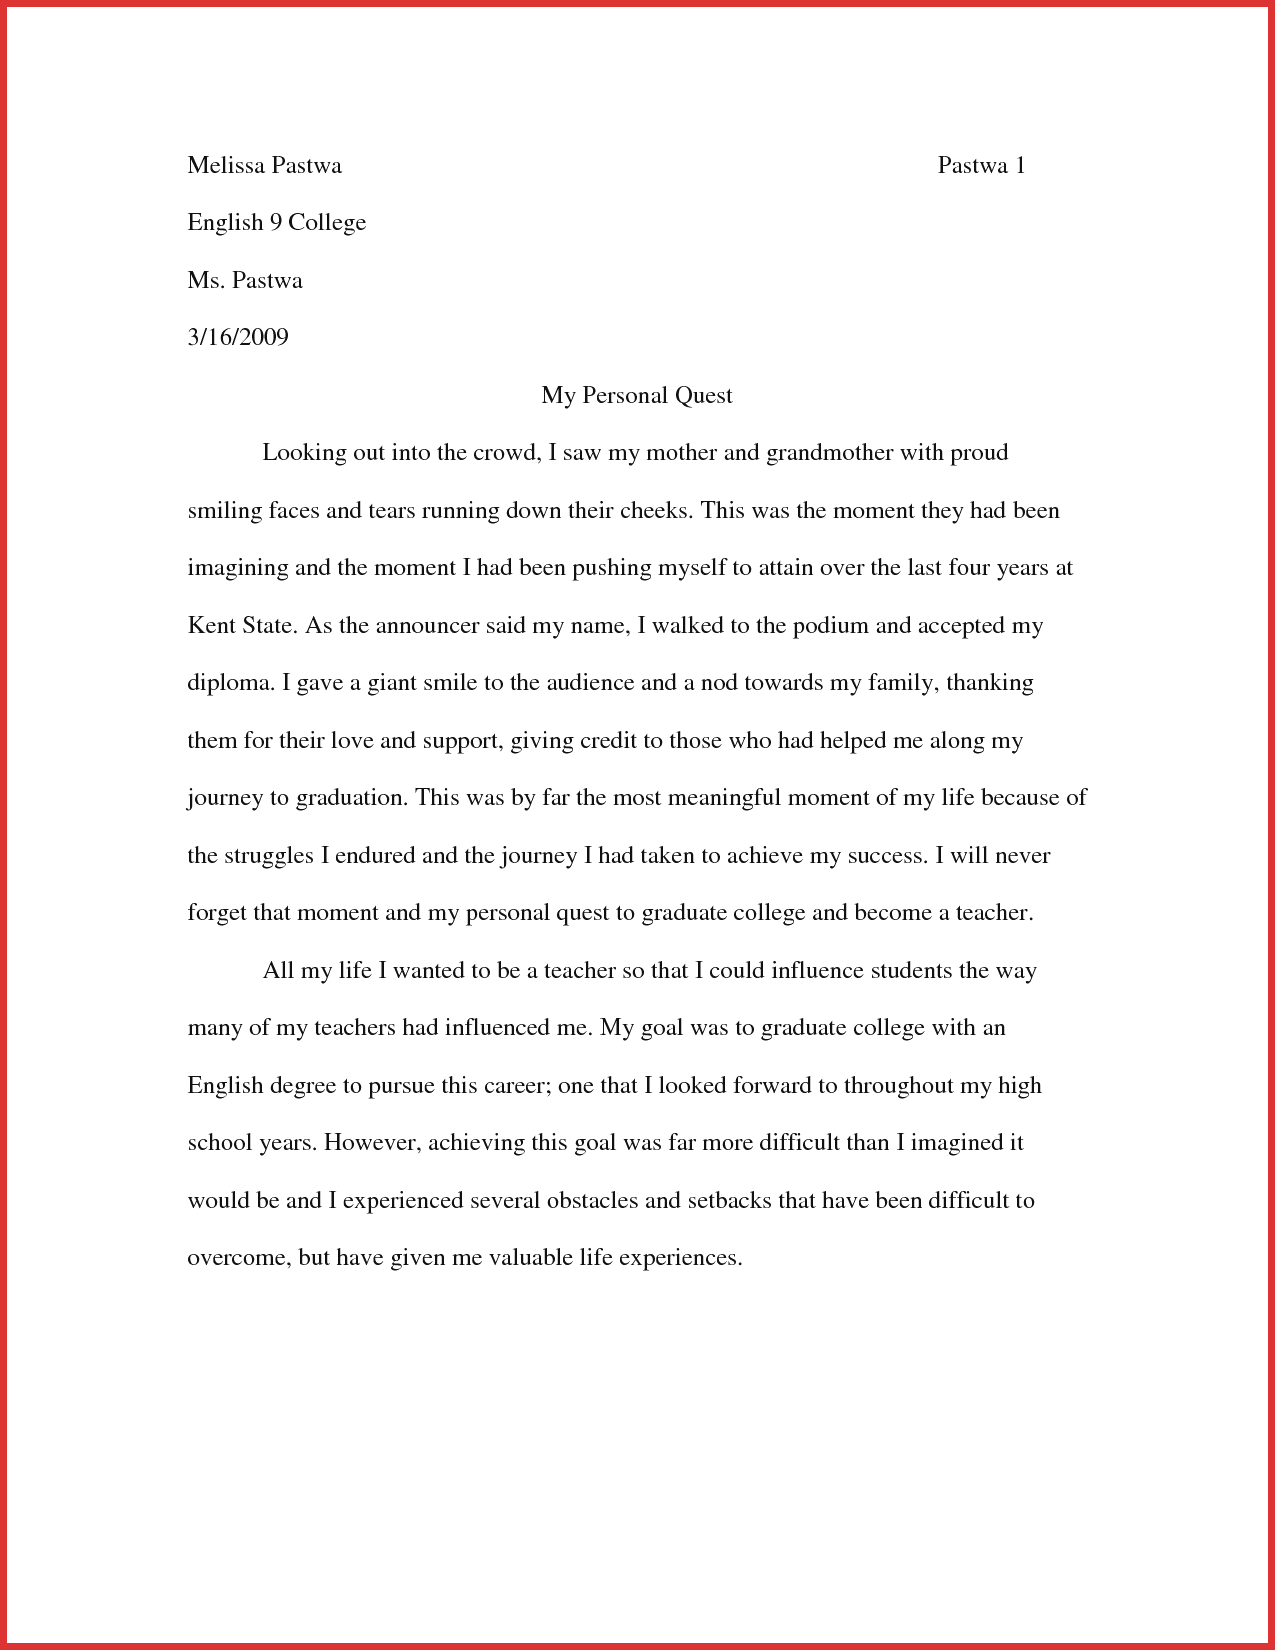 college essay examples best english essay english essay story what is a thesis in an